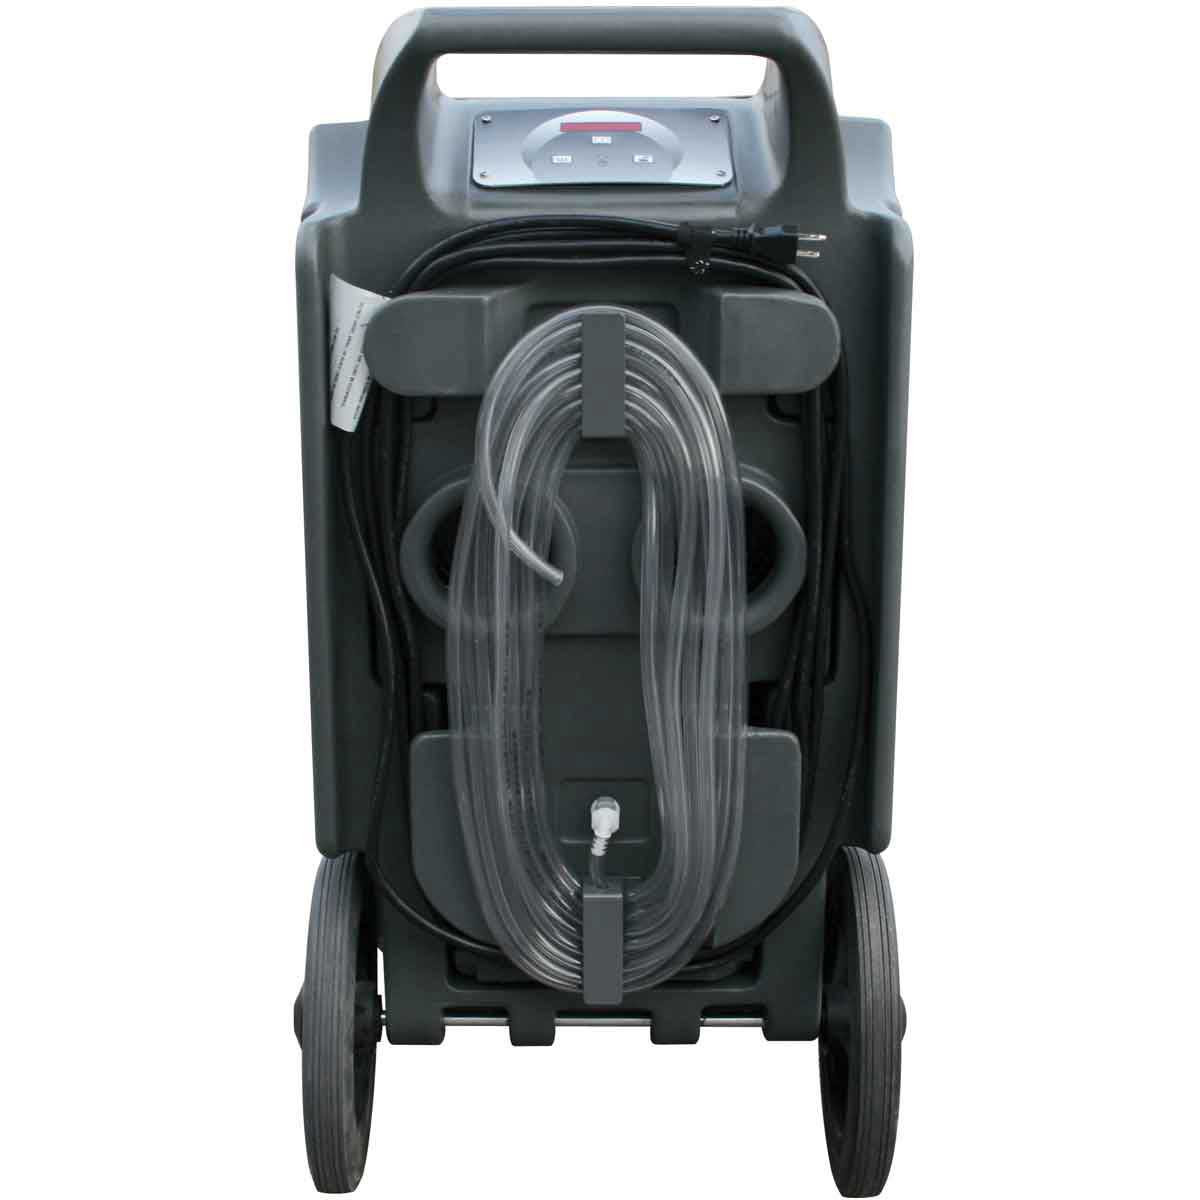 5200000302 Portable Dehumidifiers Wacker Neuson